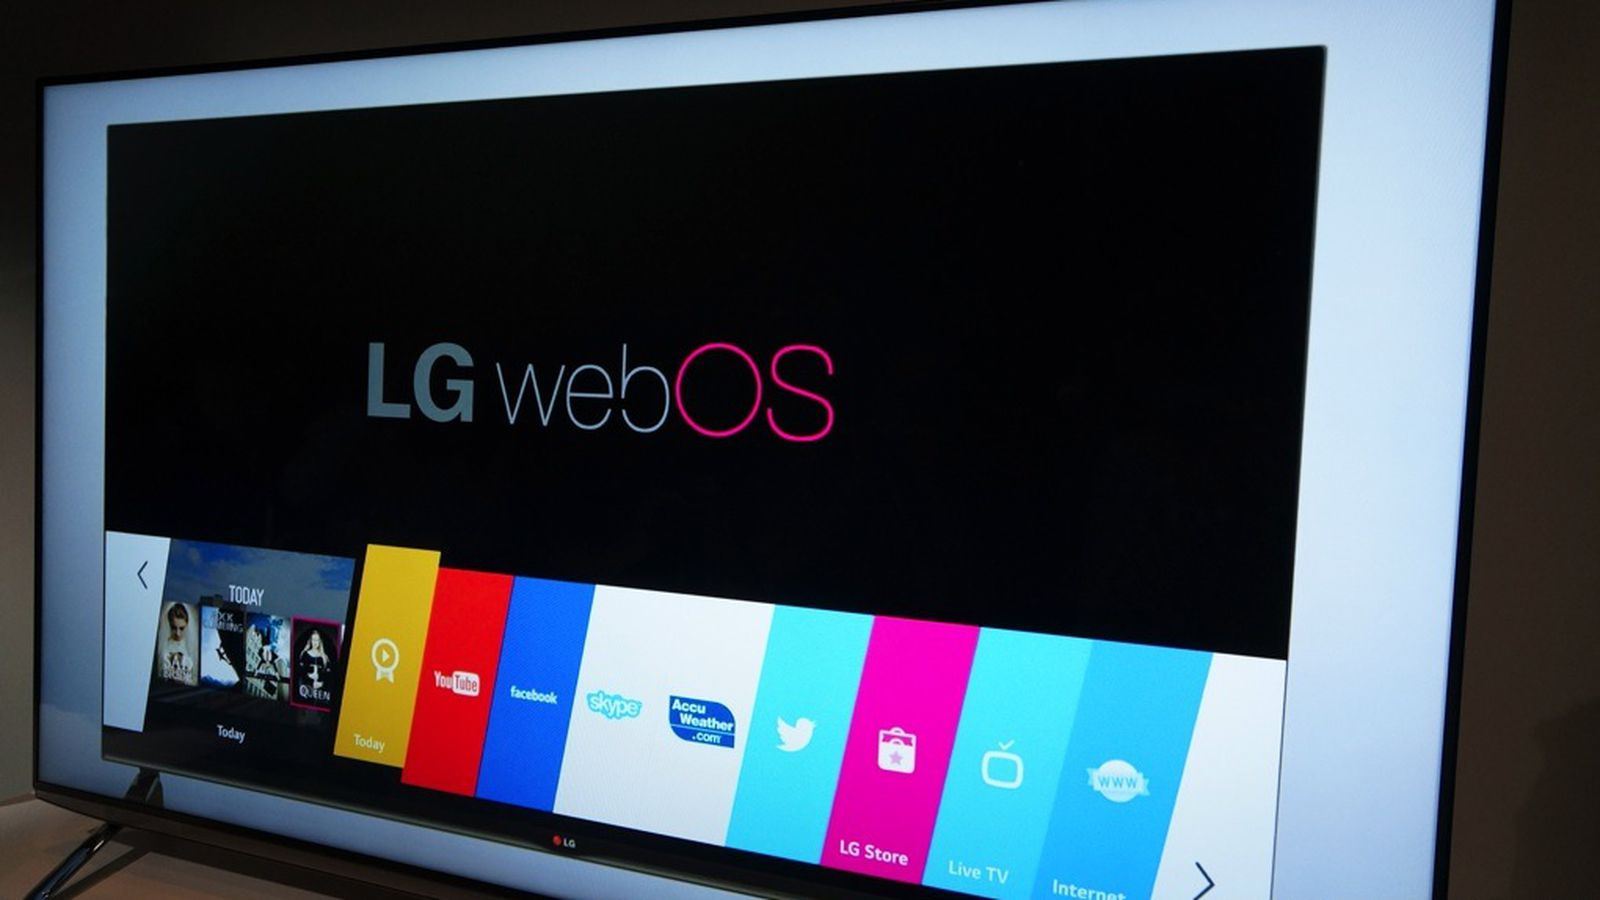 Our first look at LGs new webOS TV and curved 105inch